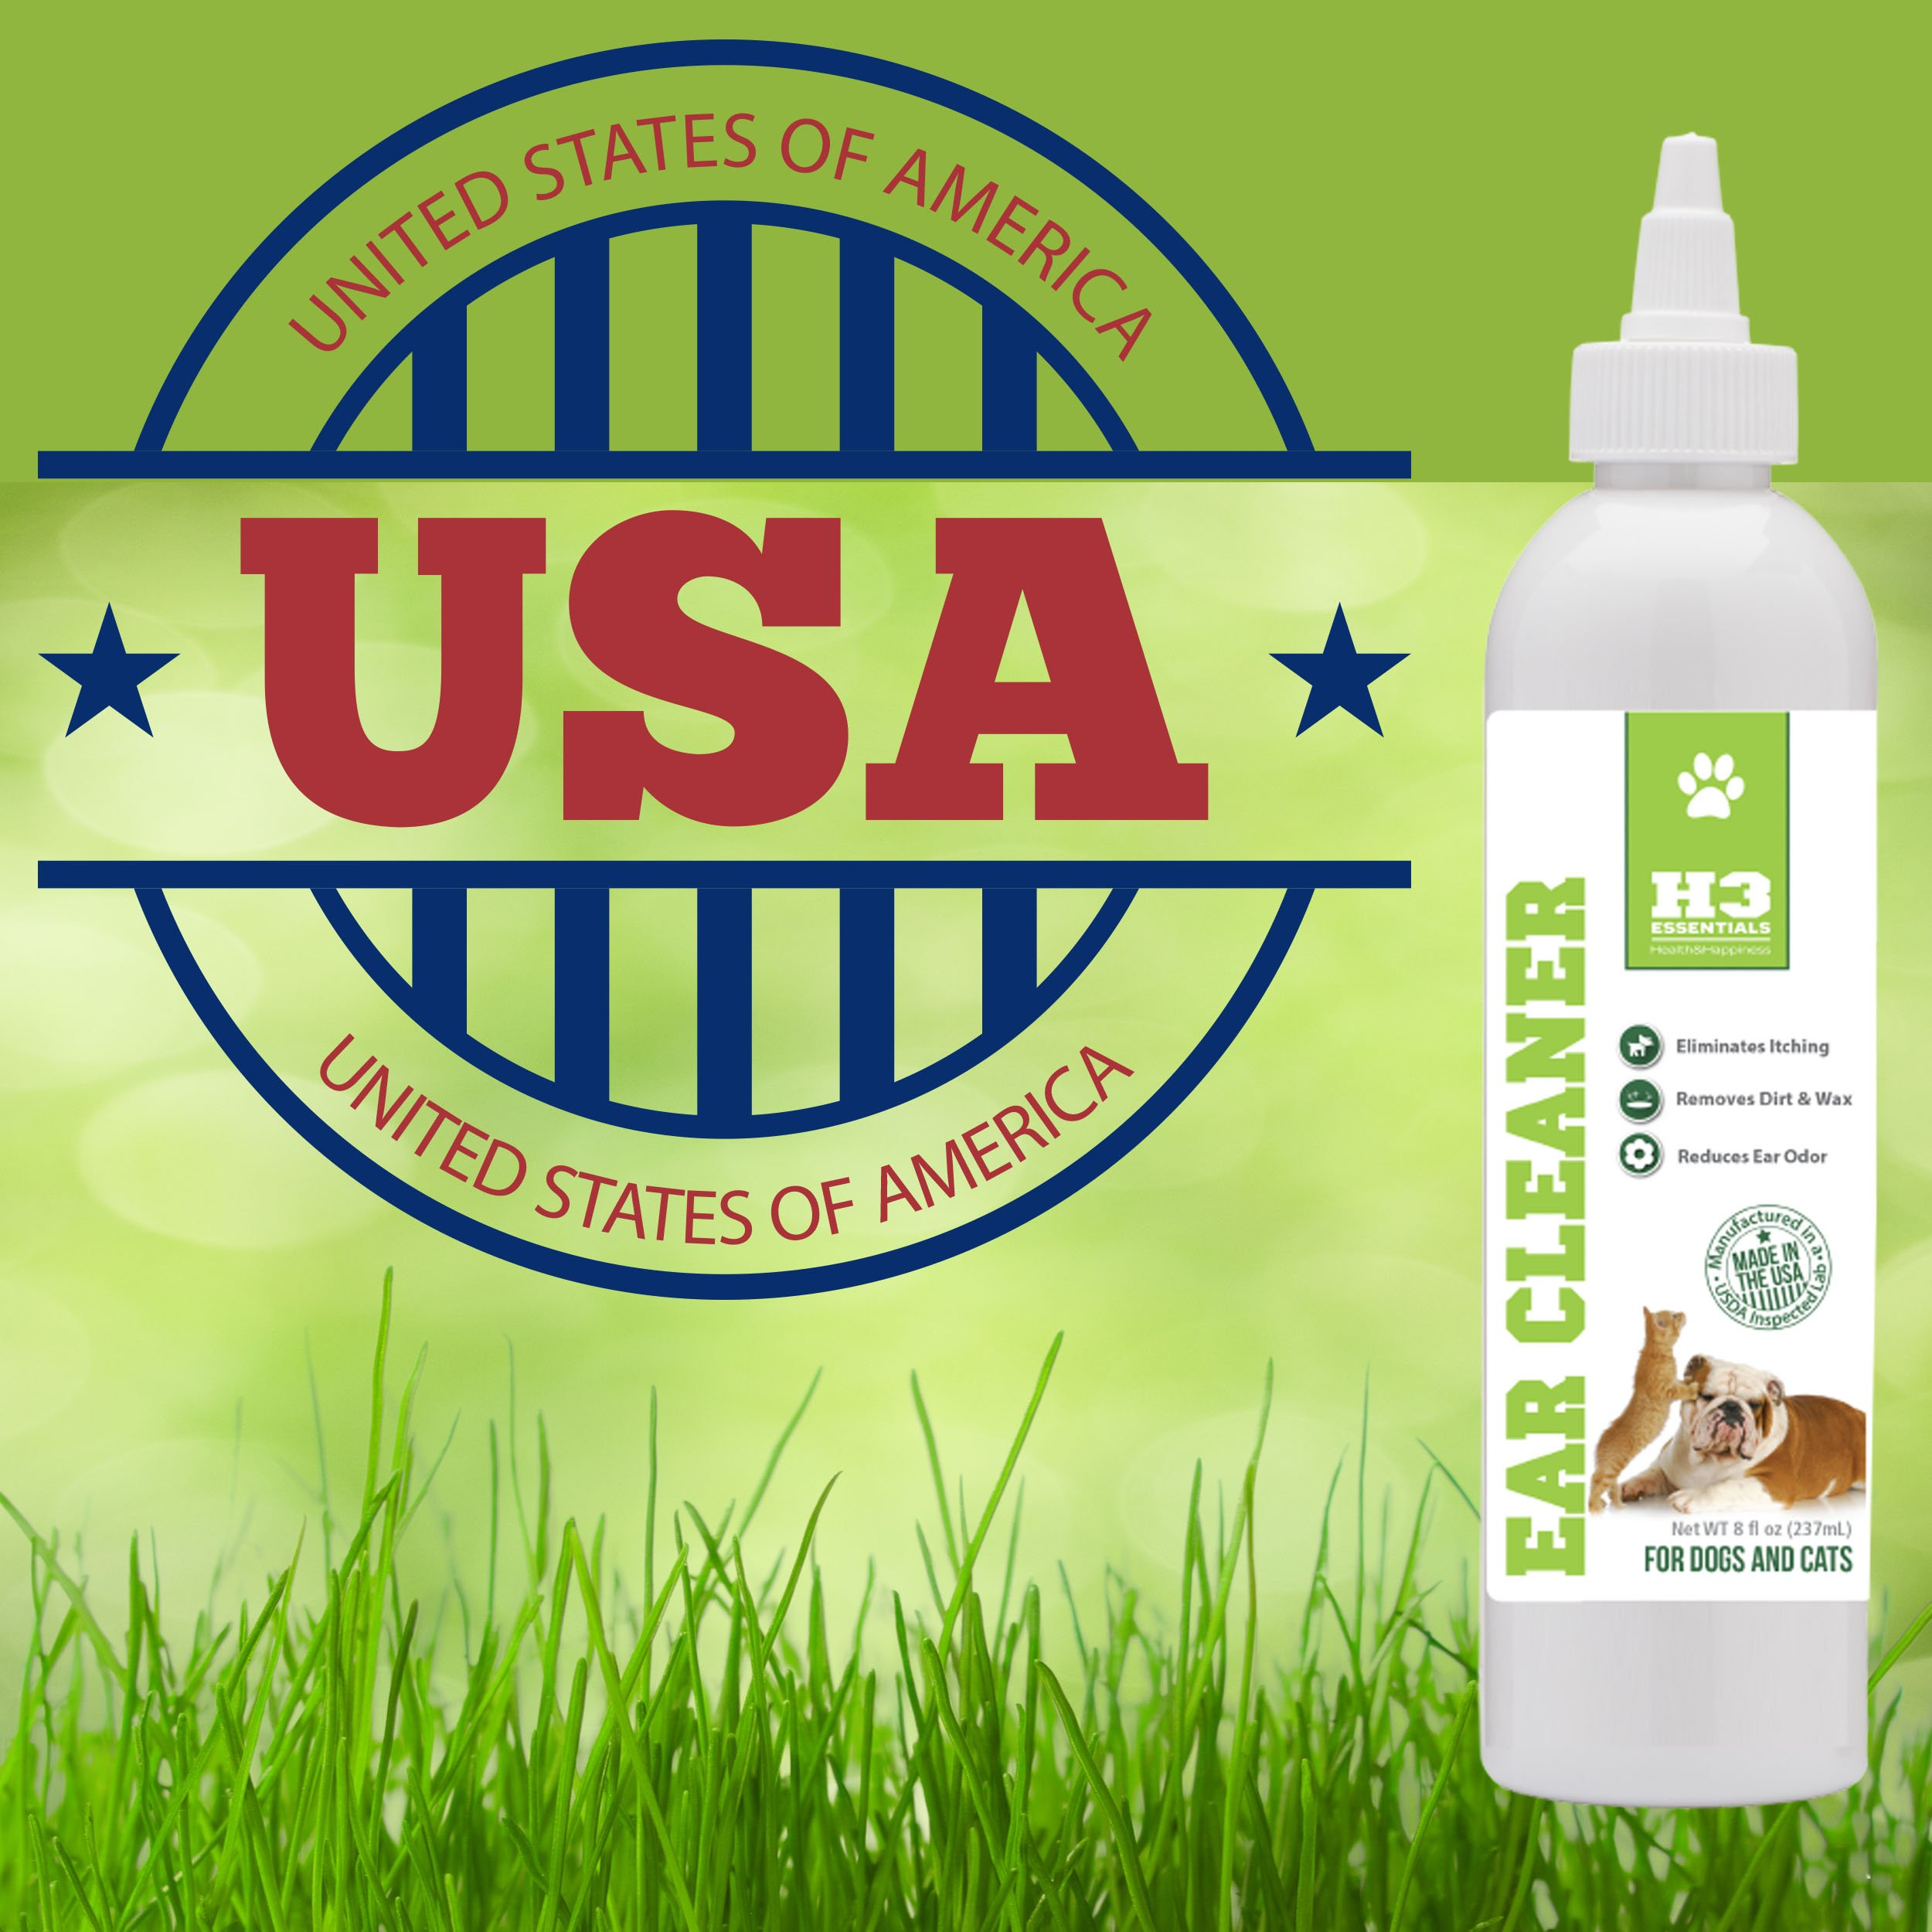 H3 Essentials Dog Ear Cleaner For Dogs and Cats with Aloe - Prevents Infection, Cleans and Dries Pets Ears - 8 oz by H3 Essentials (Image #5)